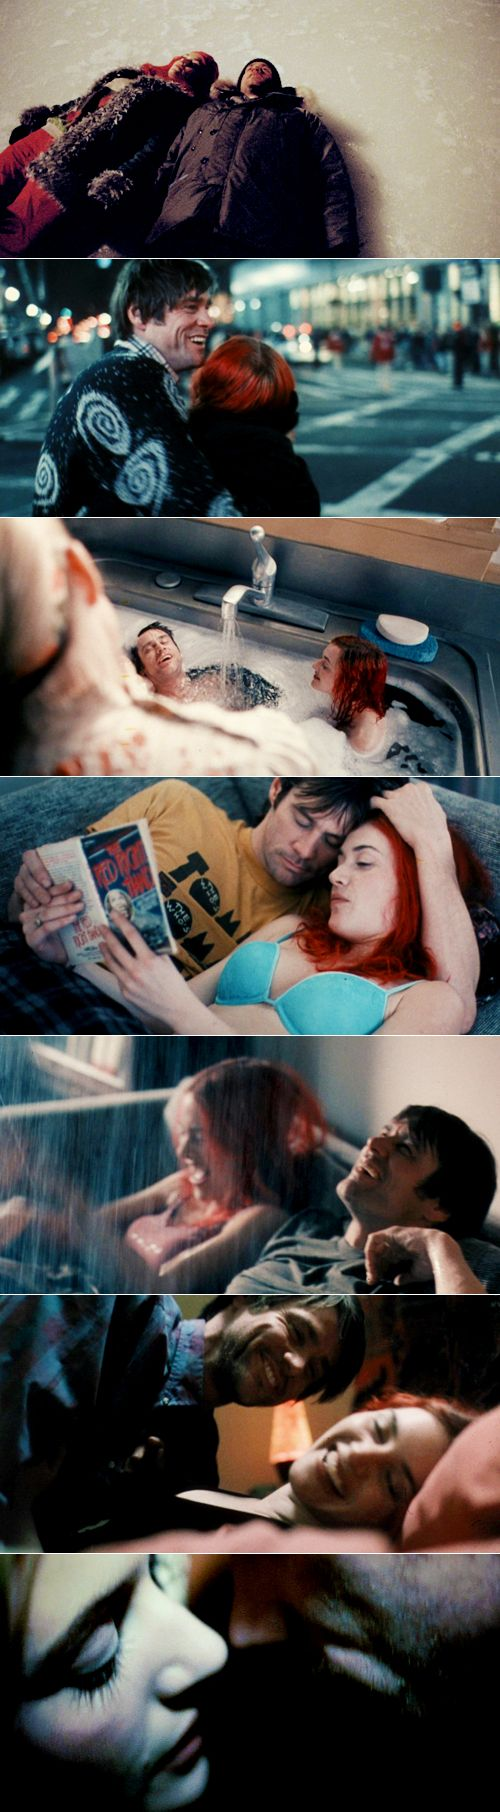 Eternal Sunshine of the Spotless Mind: Please let me keep this memory, just this one.